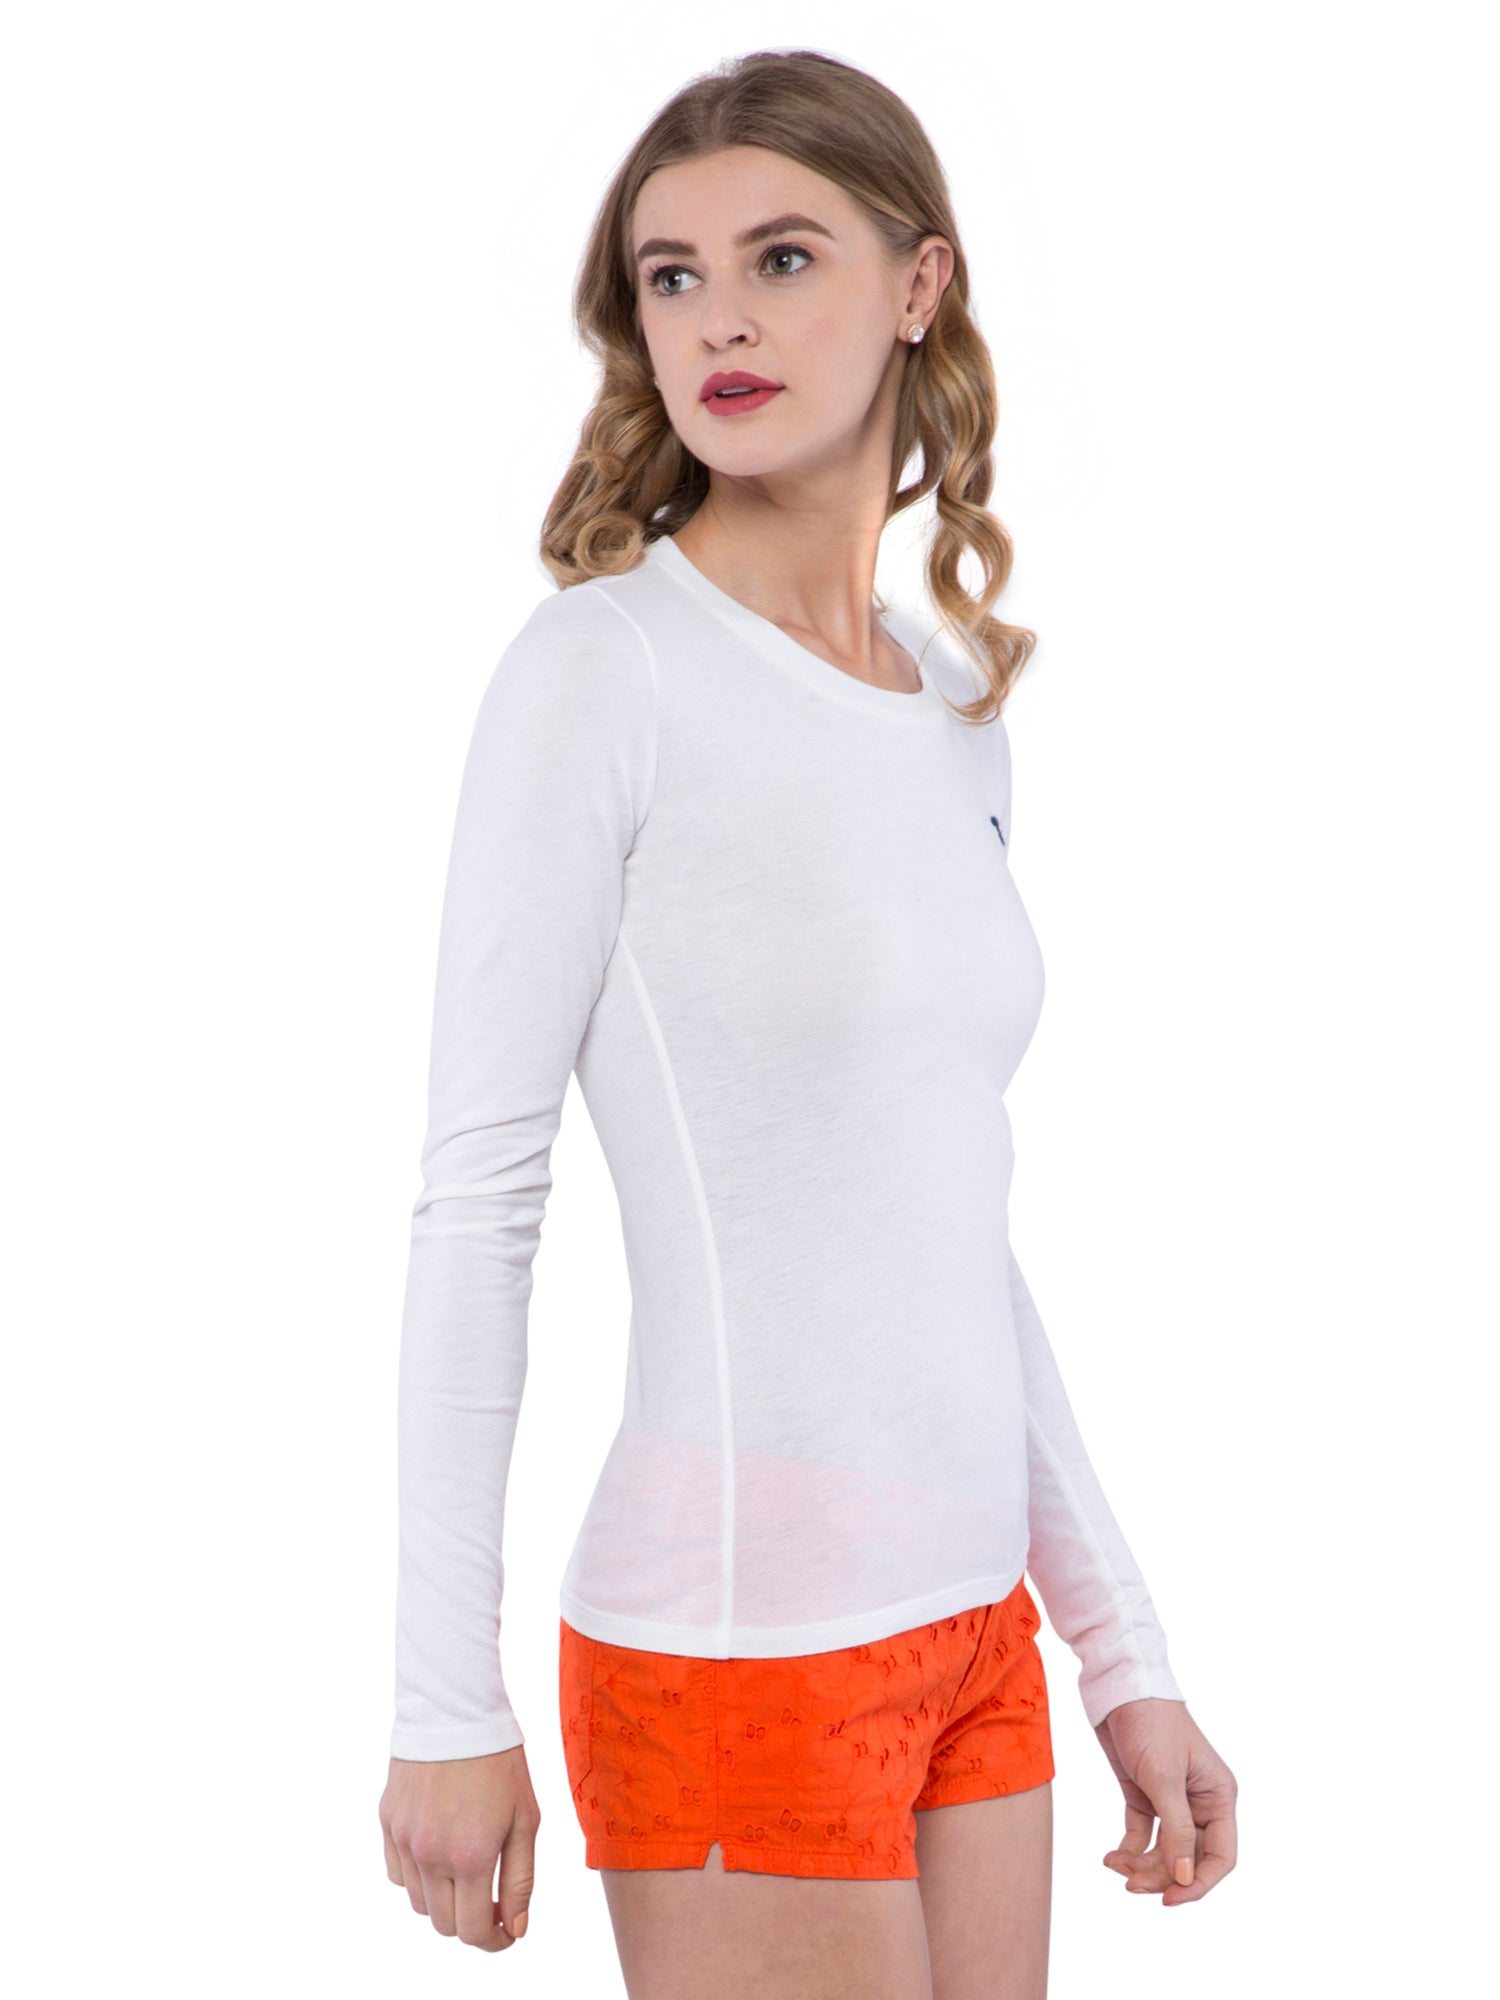 Hollister Women White Crew Neck T-Shirt